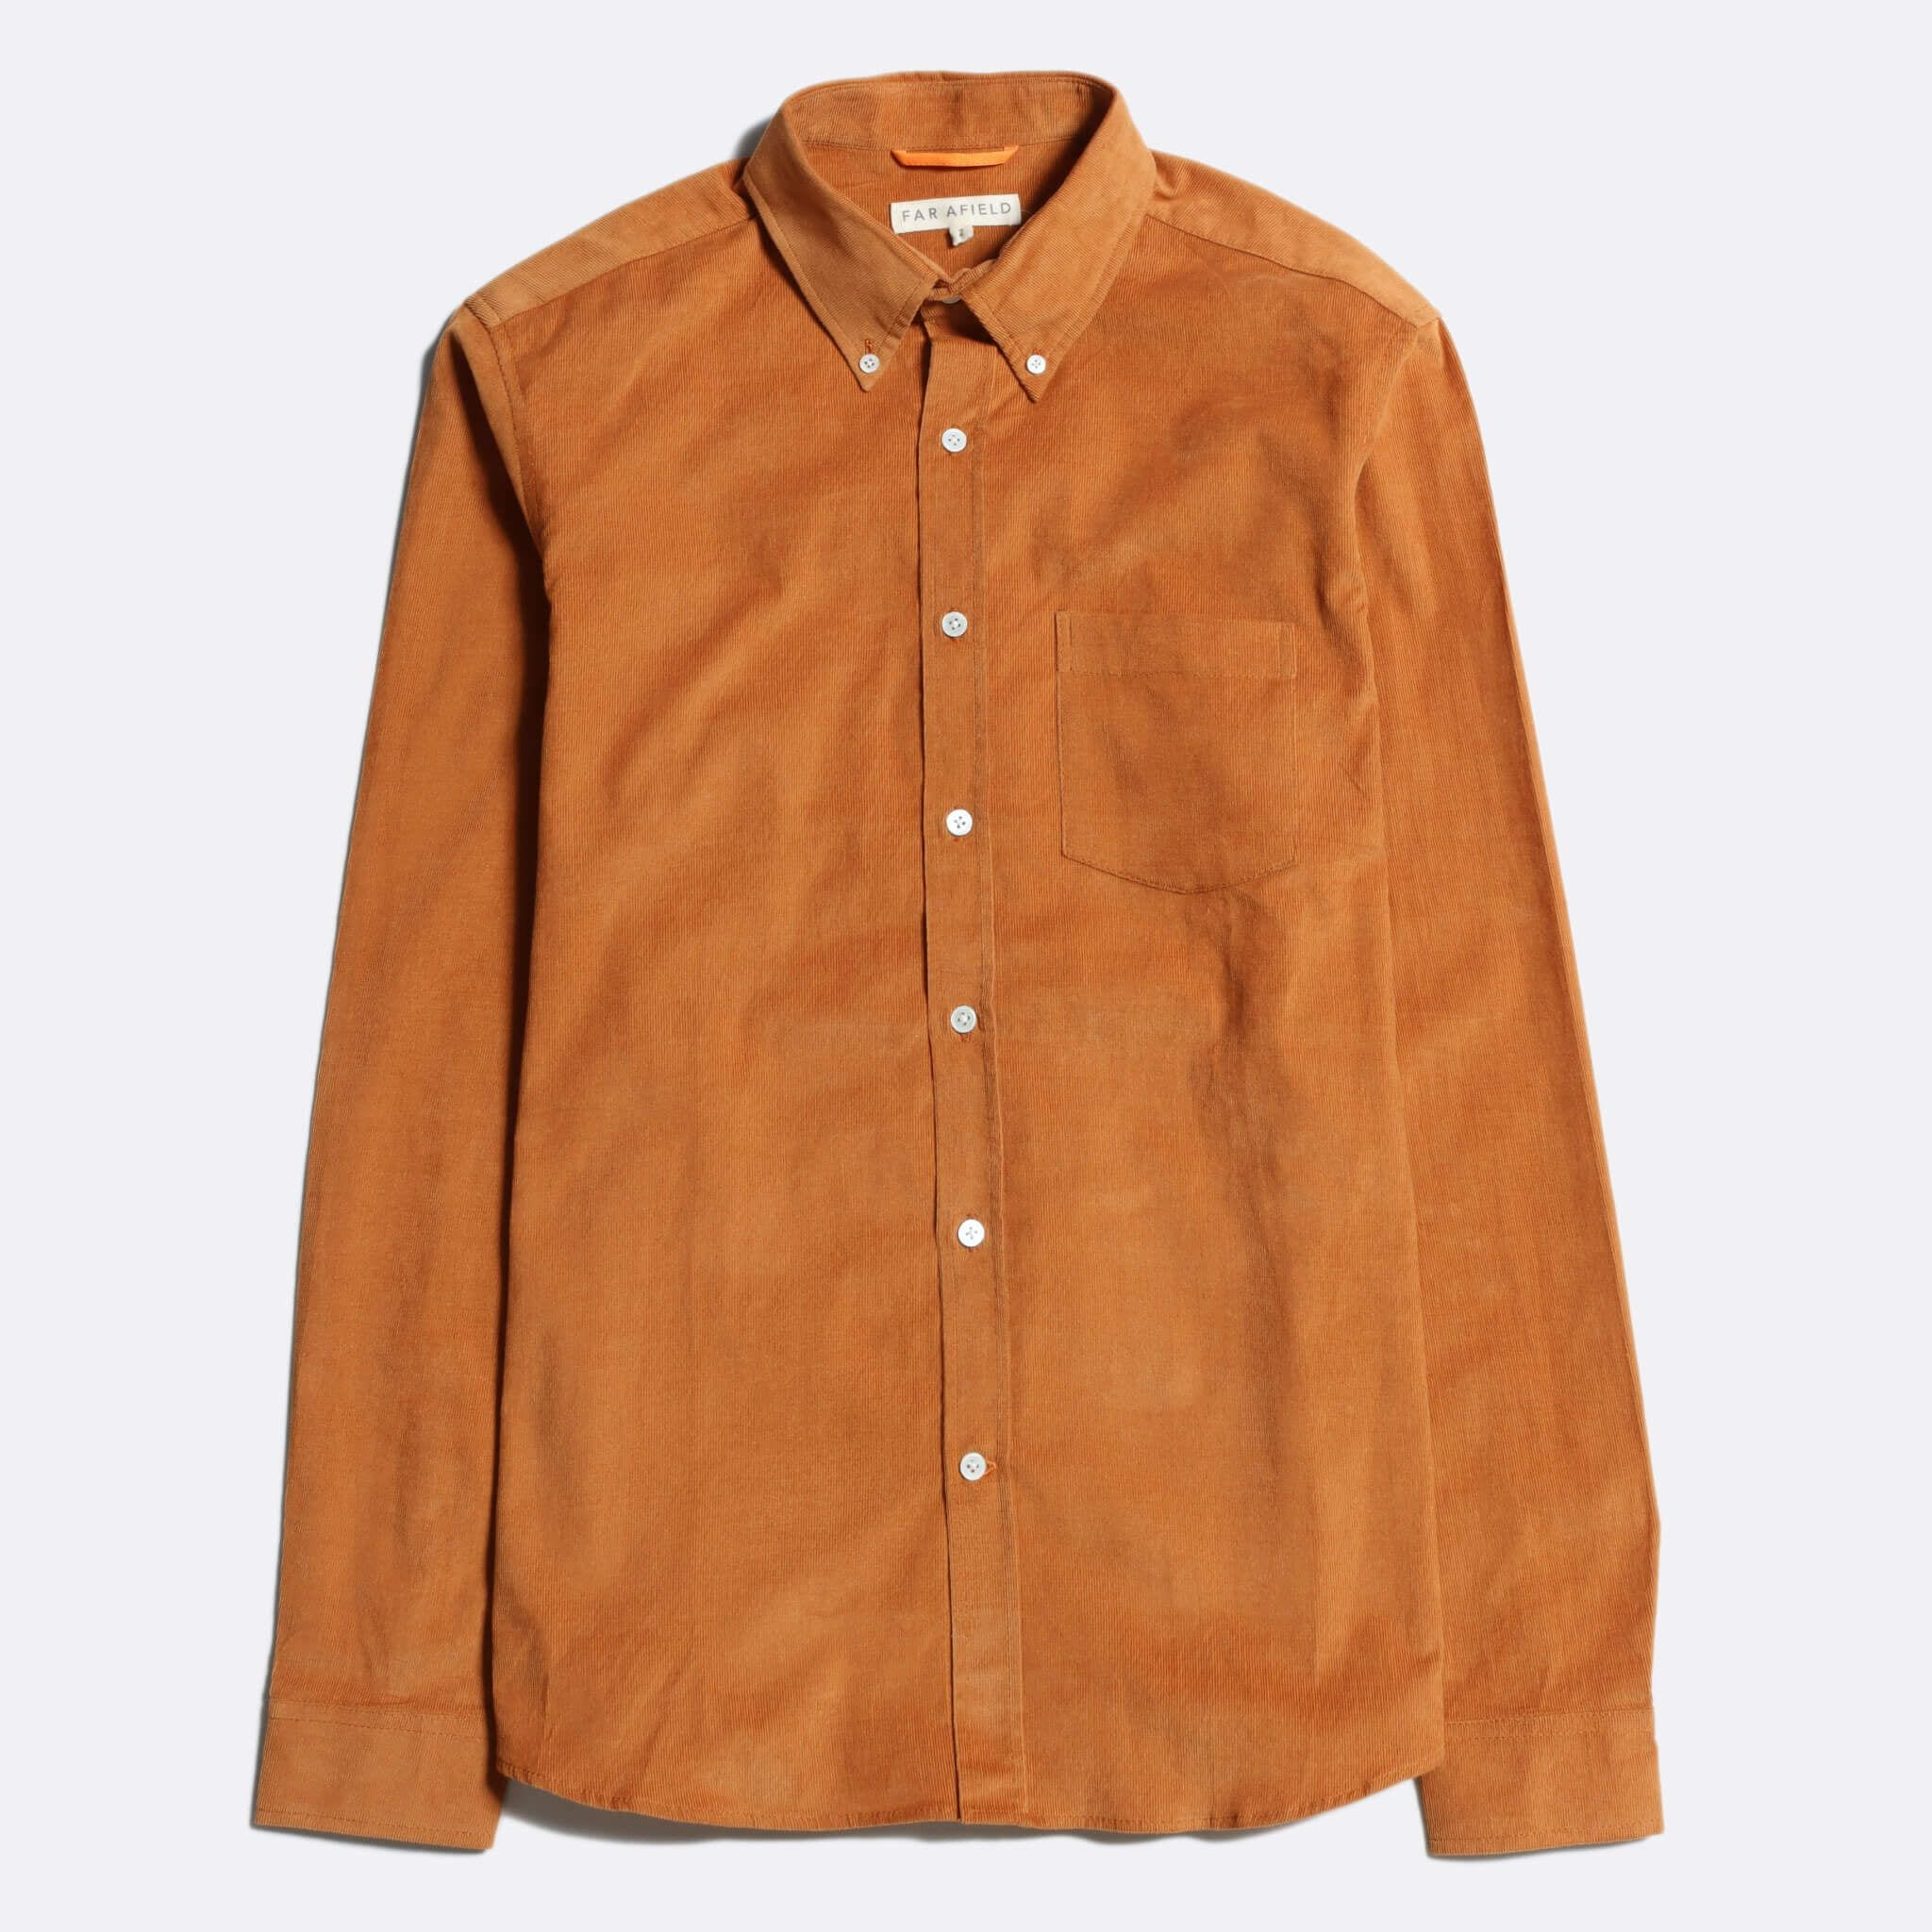 Far Afield Field Long Sleeve Shirt a Orange Organic Cotton Corduroy Fabric Classic Button Down Casual